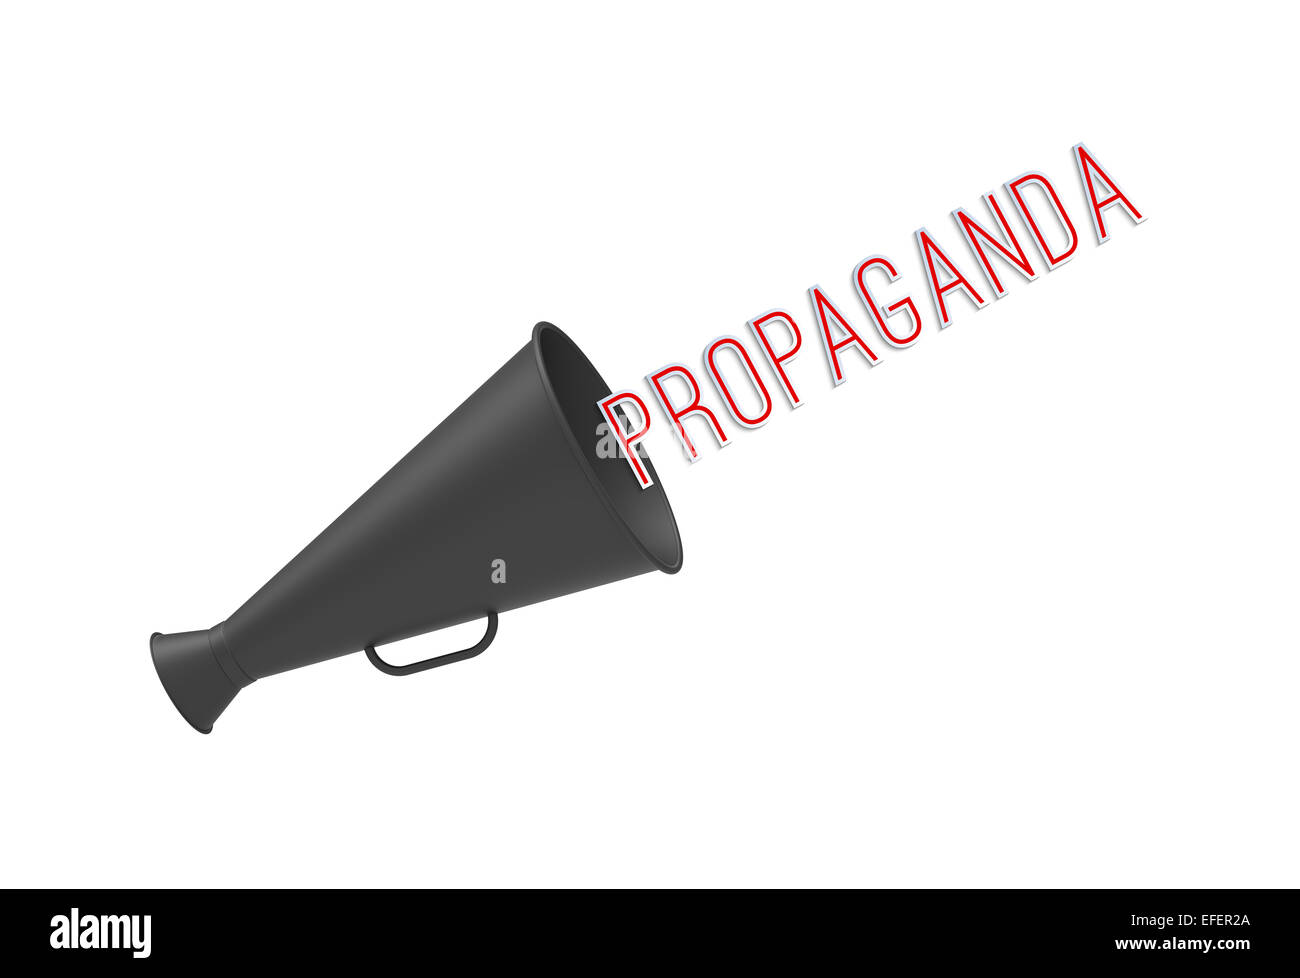 Megaphone on simple white background with pop-up caption 'Propaganda'. Concept of call-for-action, aggressive - Stock Image